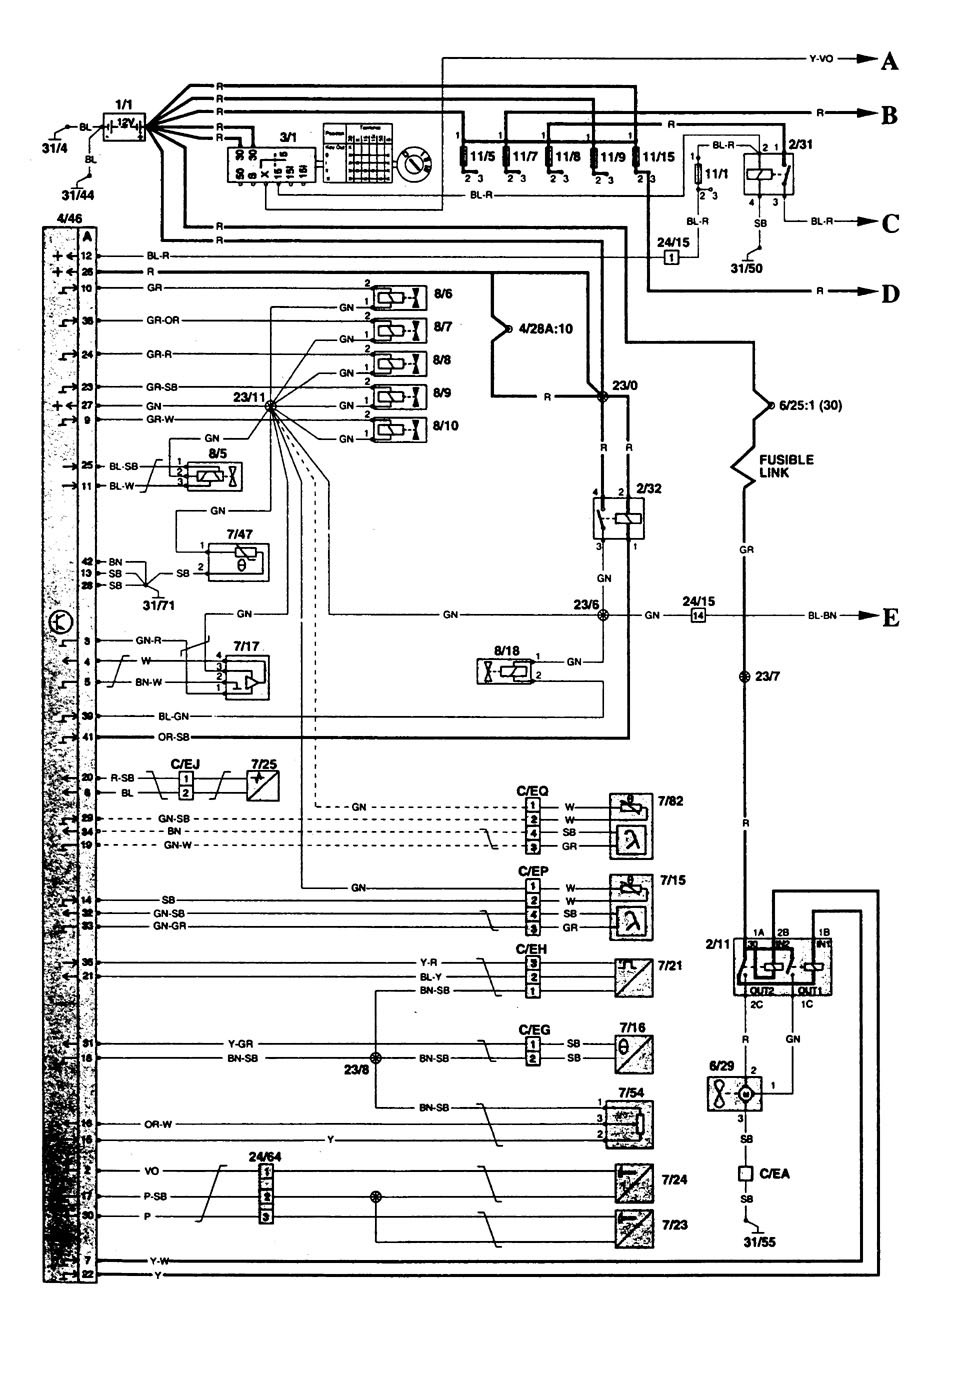 1994 volvo 850 abs wiring diagram  u2022 wiring diagram for free